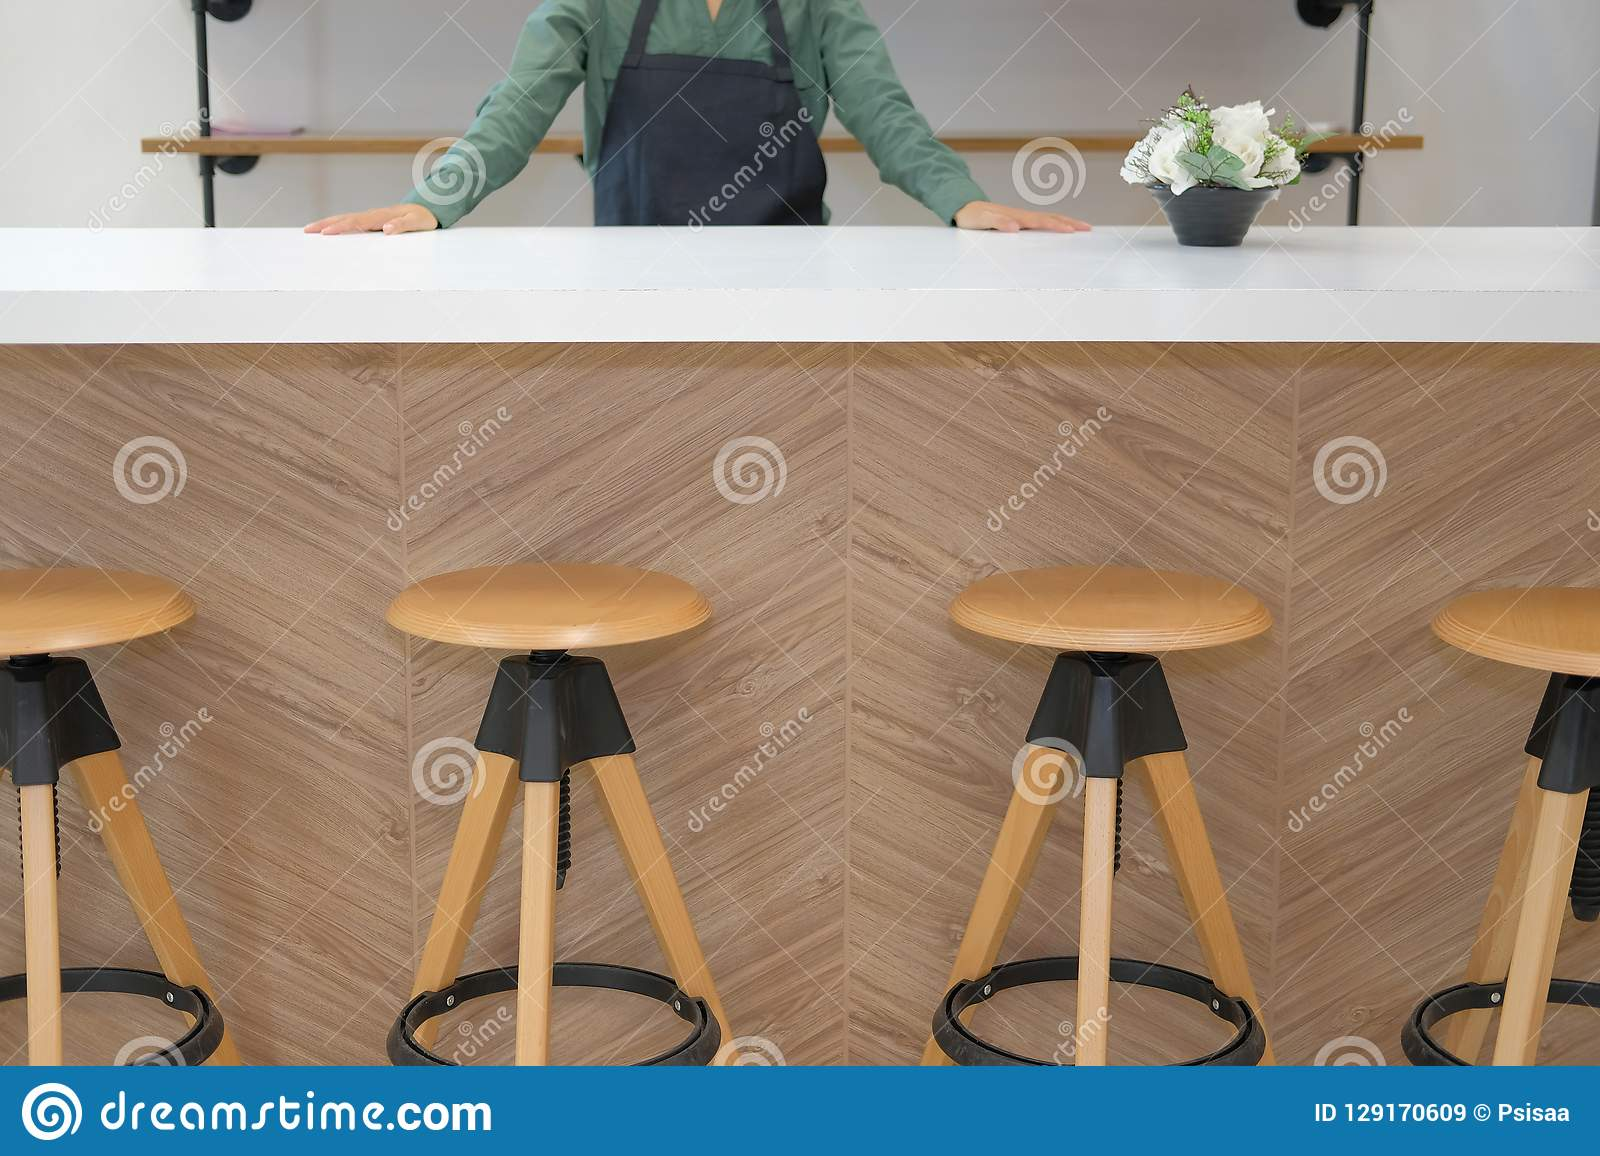 Business Owner Wearing Apron Standing At Cafe Coffee Shop Restaurant Counter Bar Stock Image Image Of Cafeteria Owner 129170609